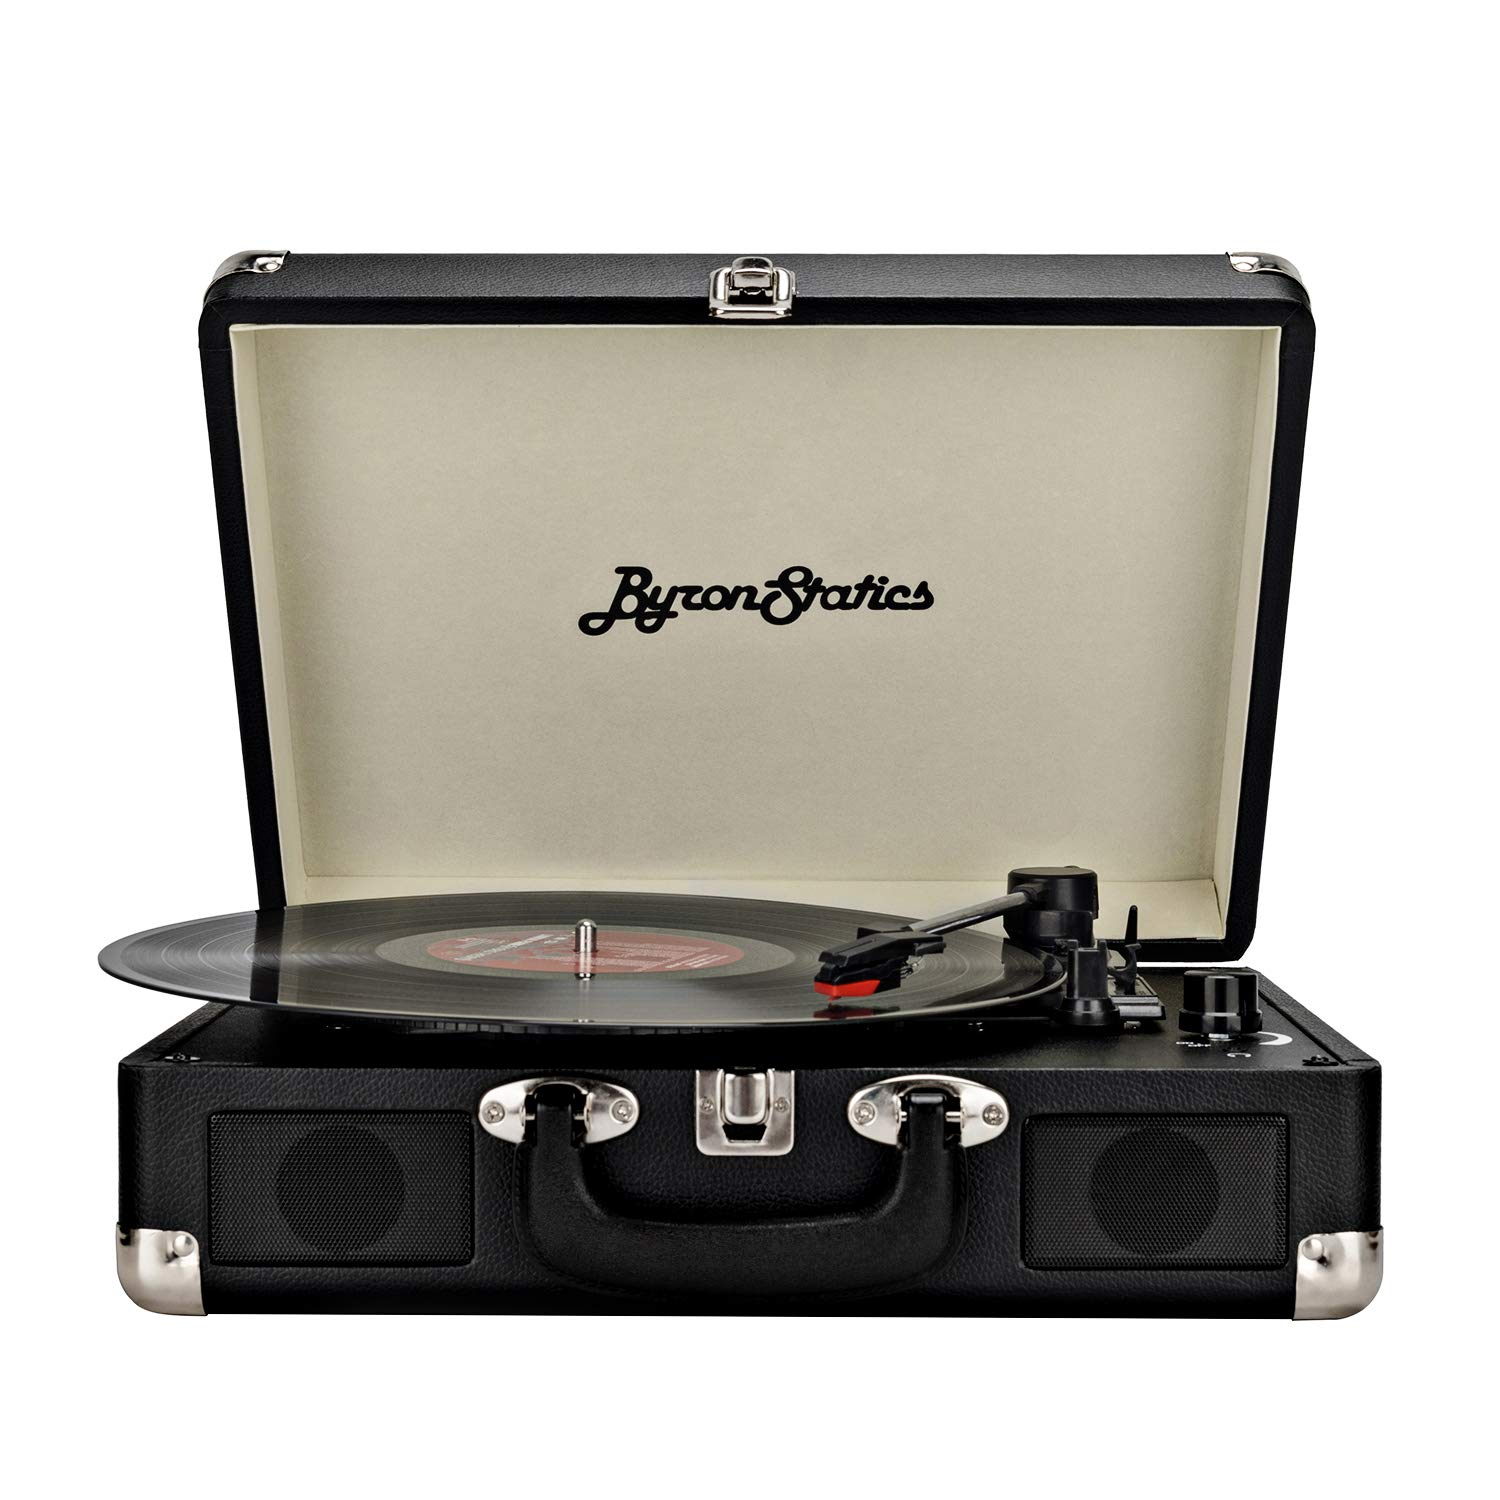 Byron Statics Record Player Vinyl Vintage Turntable Portable Nostalgic 3-Speed 2 Stereo Speakers Replacement Needle 9V 0.8A DC in Standard RCA Headphone Outputs Black